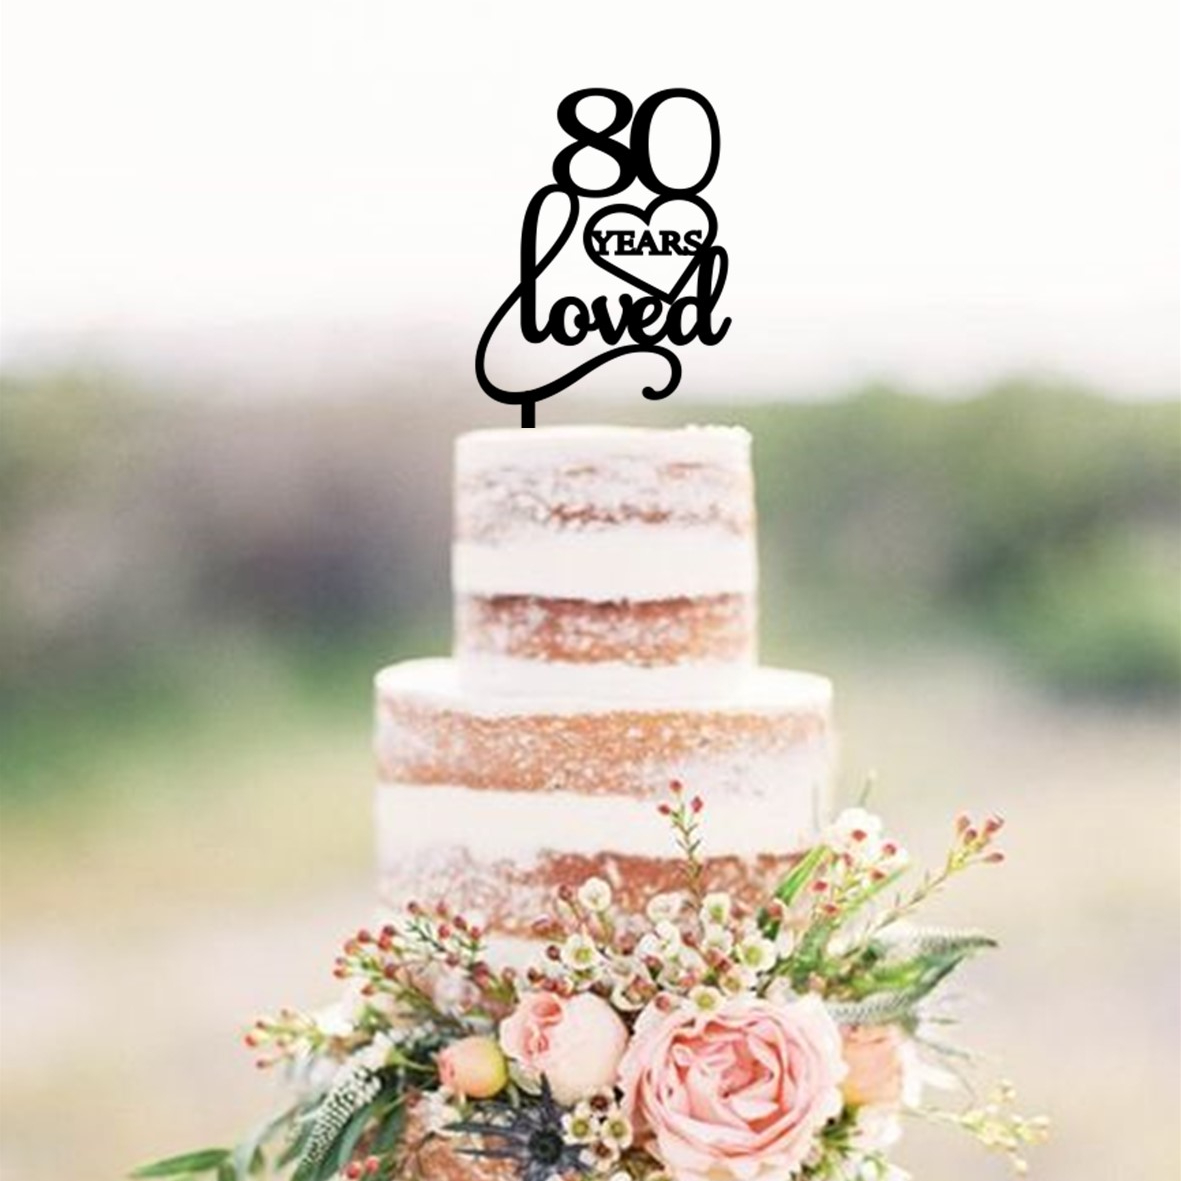 80 Years Loved 2 Cake Topper